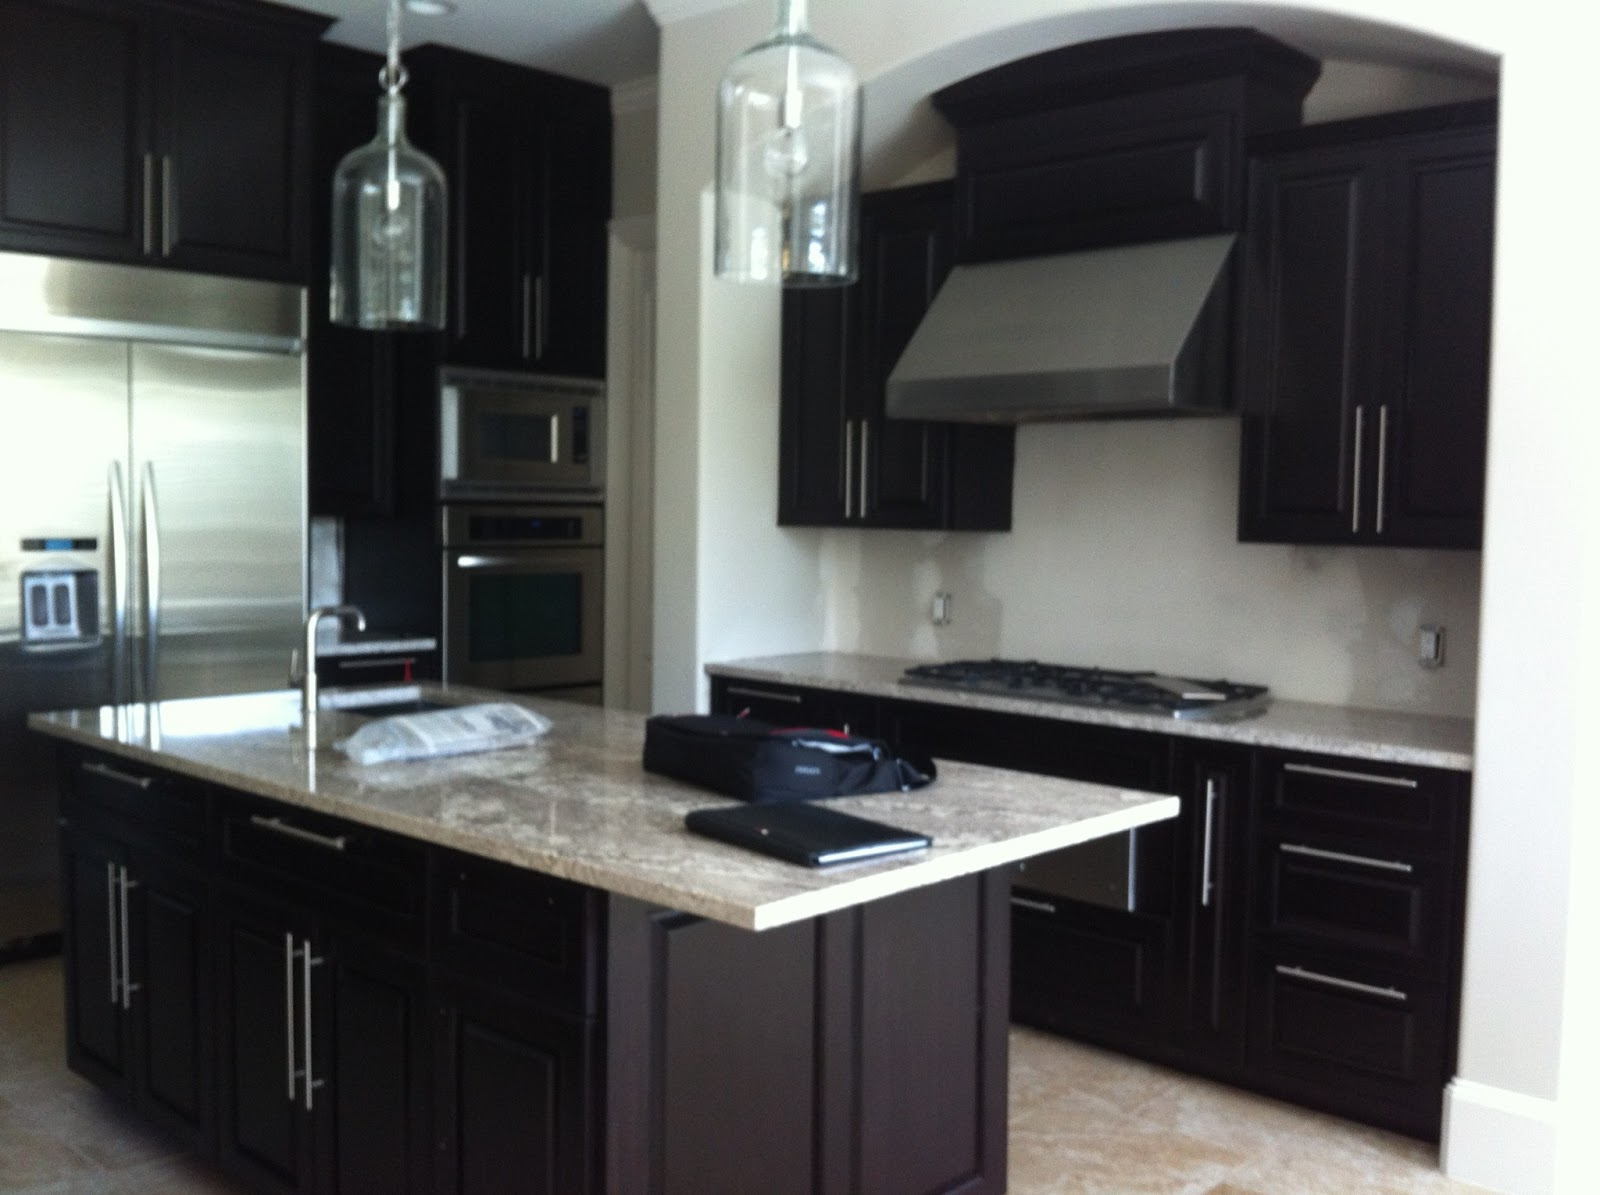 Fireplace tile archives spaces designed interior design for Black kitchen cabinets with dark floors